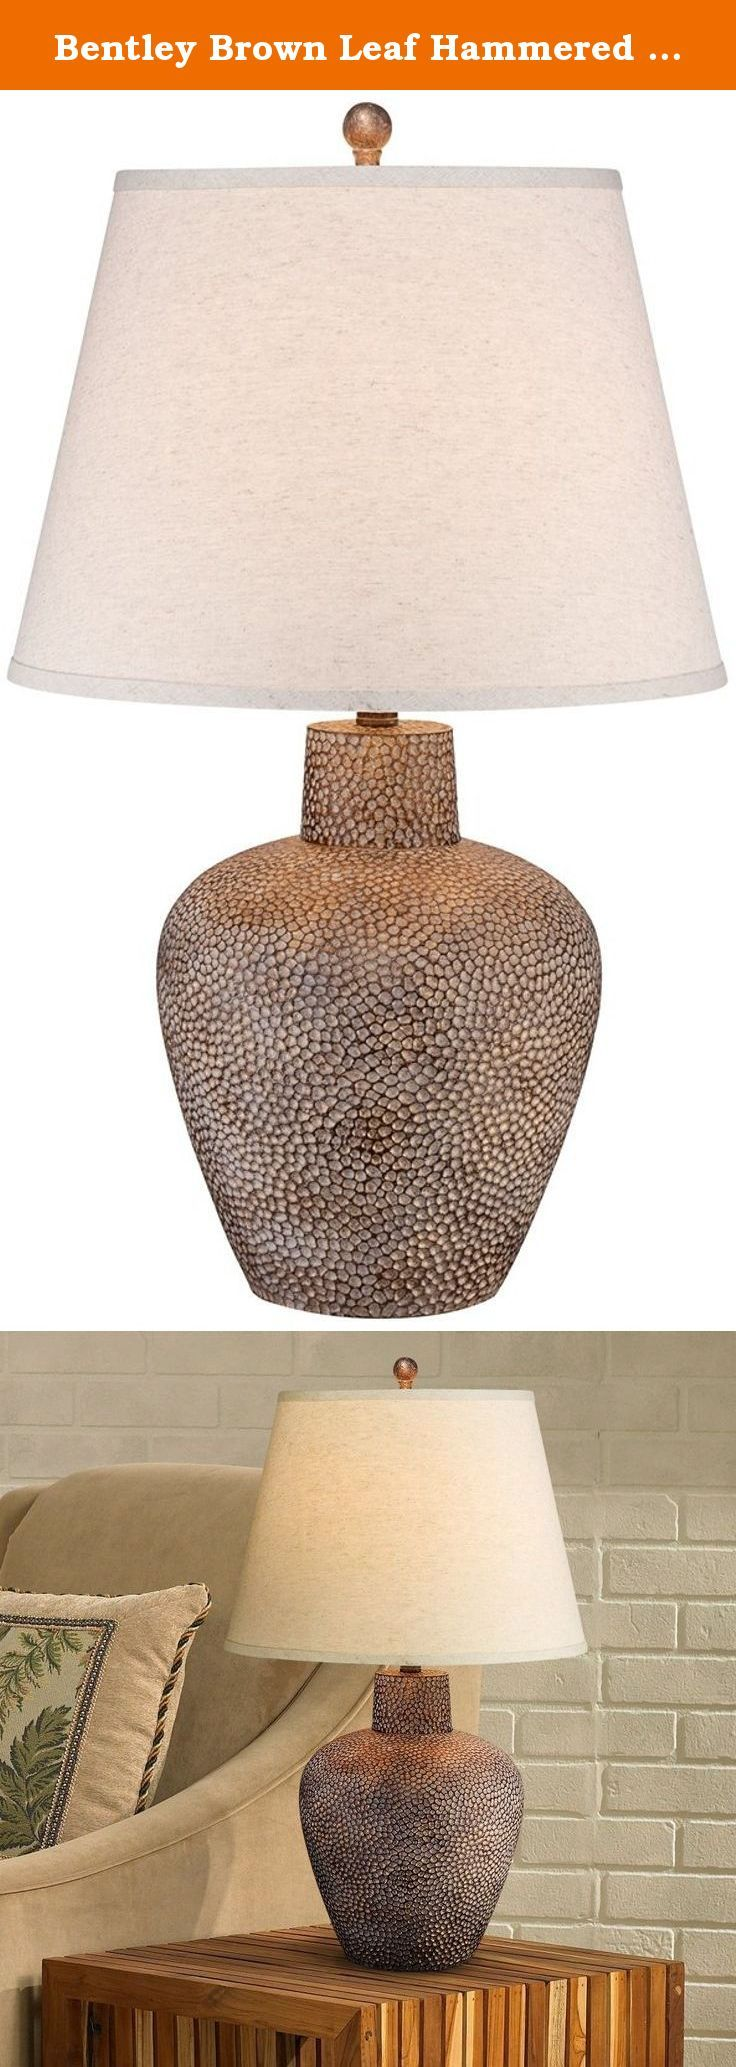 Bentley Brown Leaf Hammered Pot Table Lamp. This attractive table lamp boasts a beautiful hammered base in a shimmering brown leaf finish. Elegantly topped with a beige tan shade, this design is a great way to add light and style to a room. Inspired by Southwestern and Western style decor. - Bentley Brown Leaf table lamp. - Hammered metal texture. - Brown leaf finish. - A wonderful look for Southwest or Lodge style homes. - Beige tan shade. - Resin base. - Maximum 150 watt bulb (not...